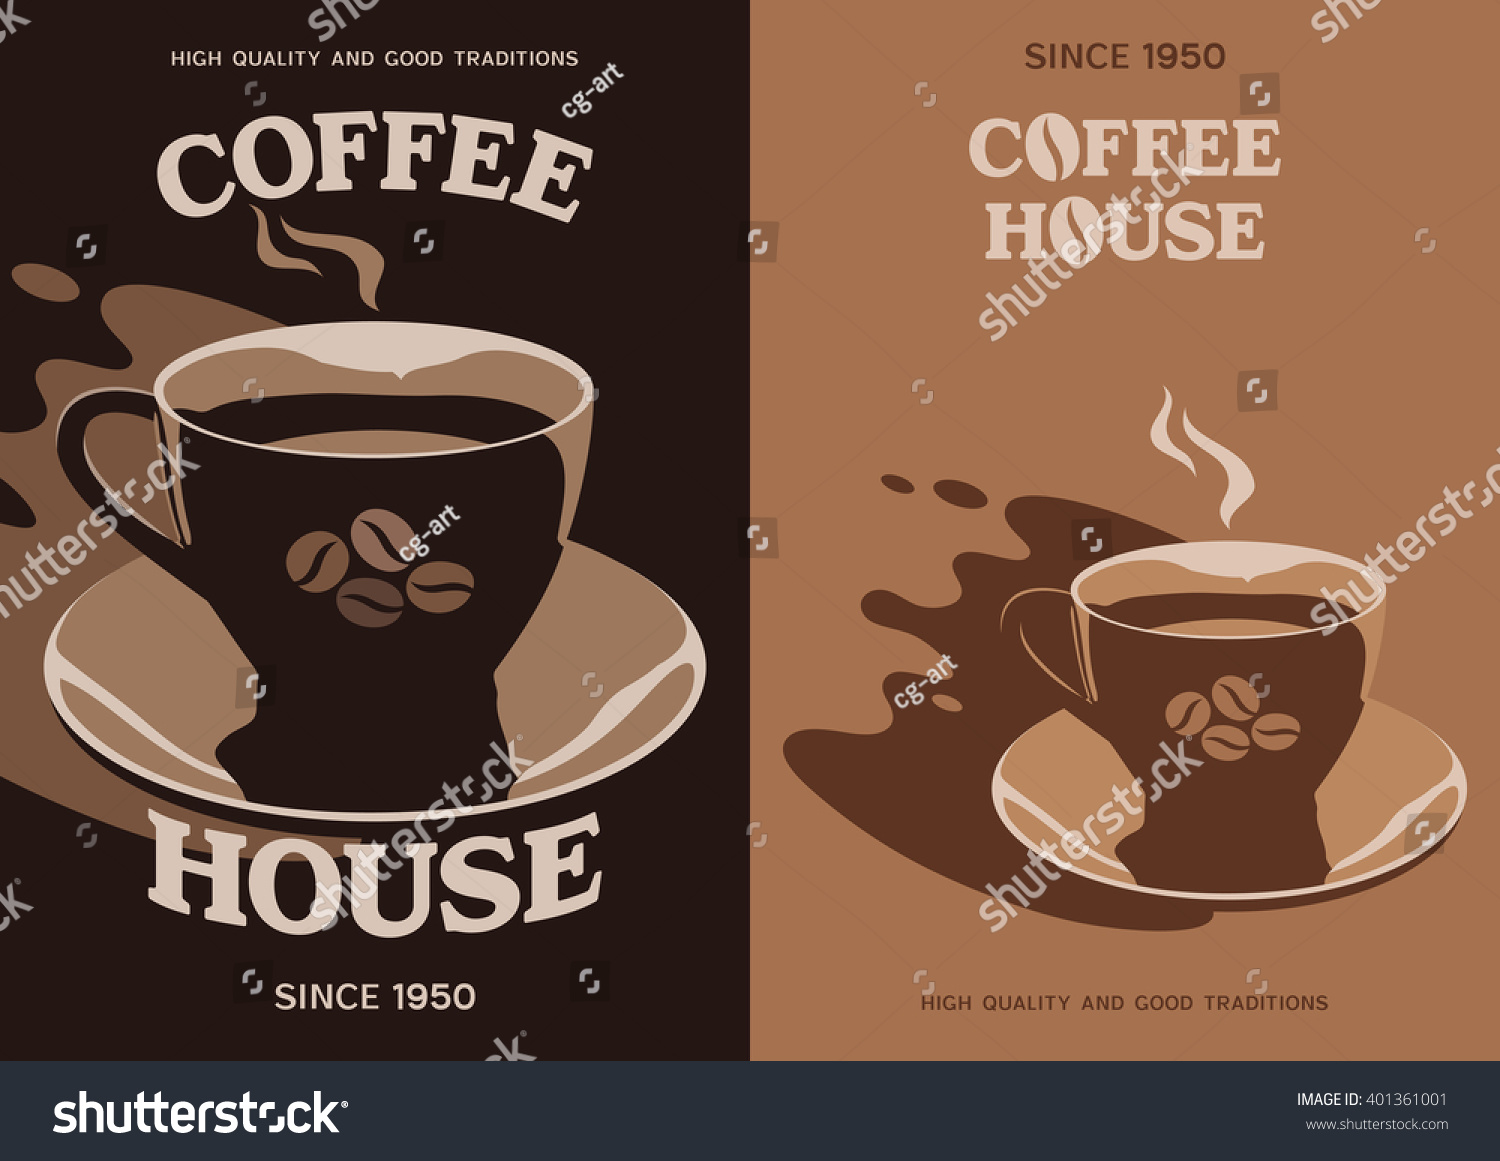 Poster design 1950 - Coffee House Vector Poster Banner Flyer Brochure Cover Design With Cup And Saucer